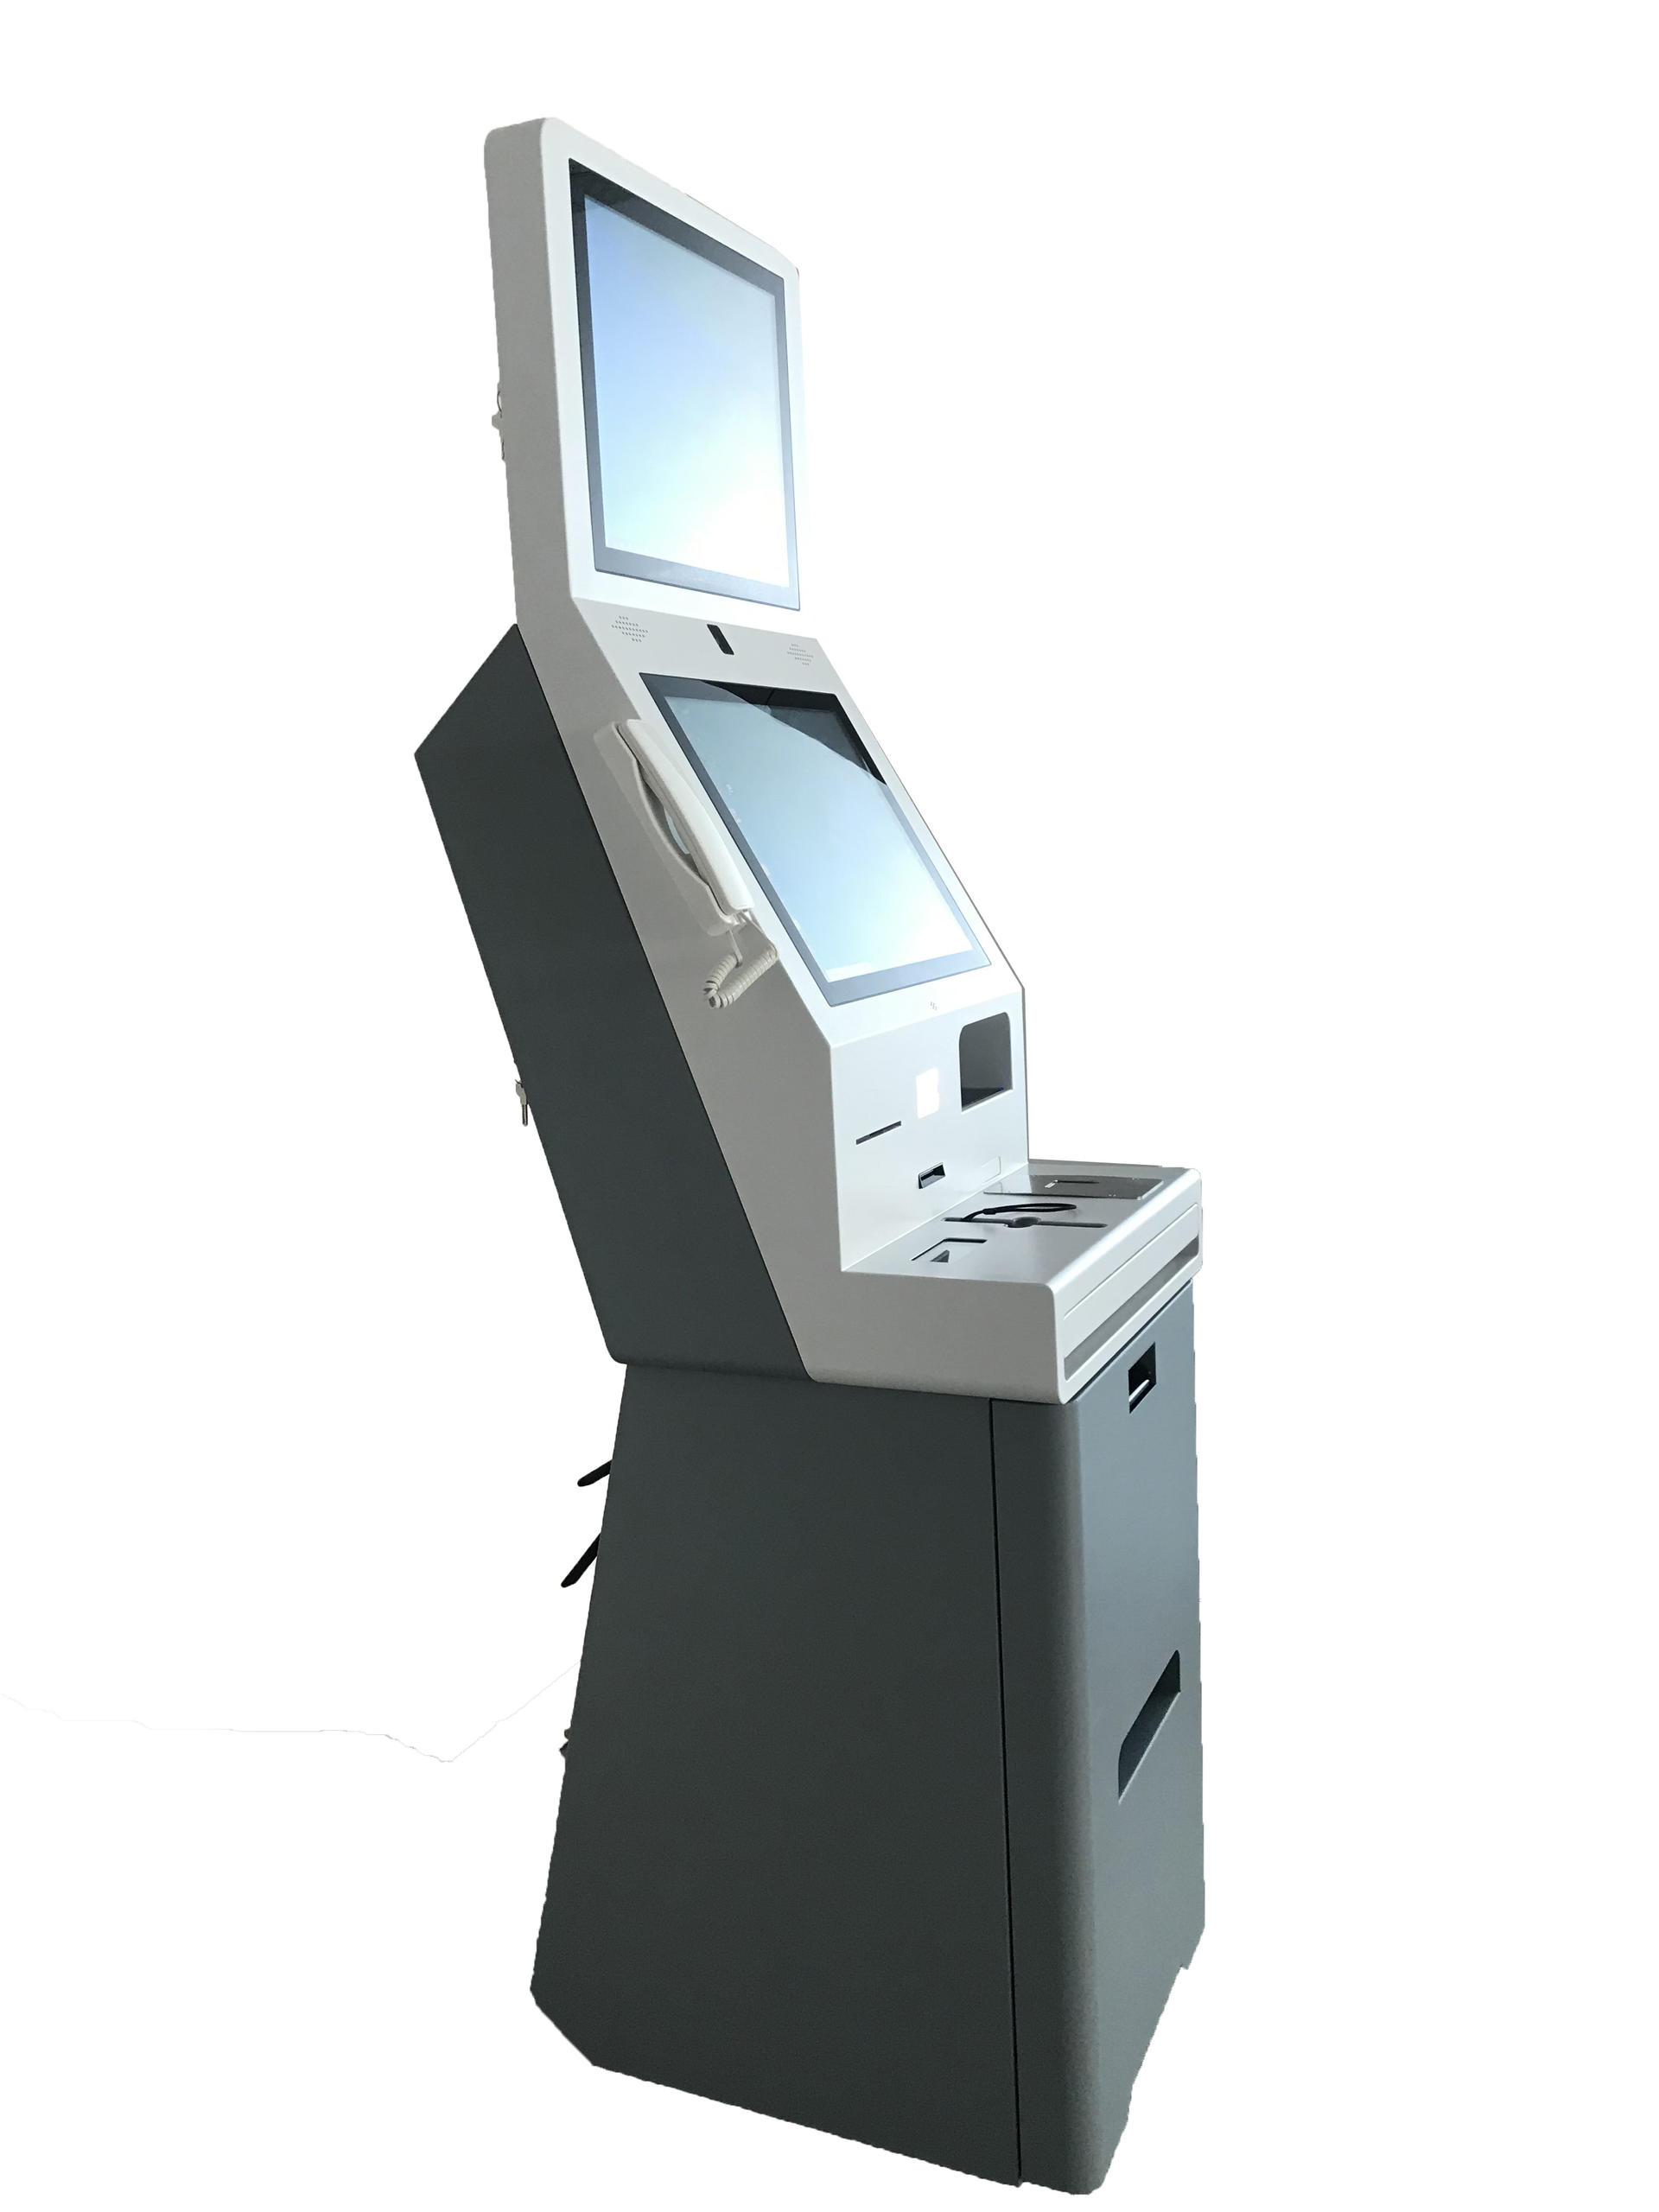 Hotel Self service payment kiosk with room card dispenser